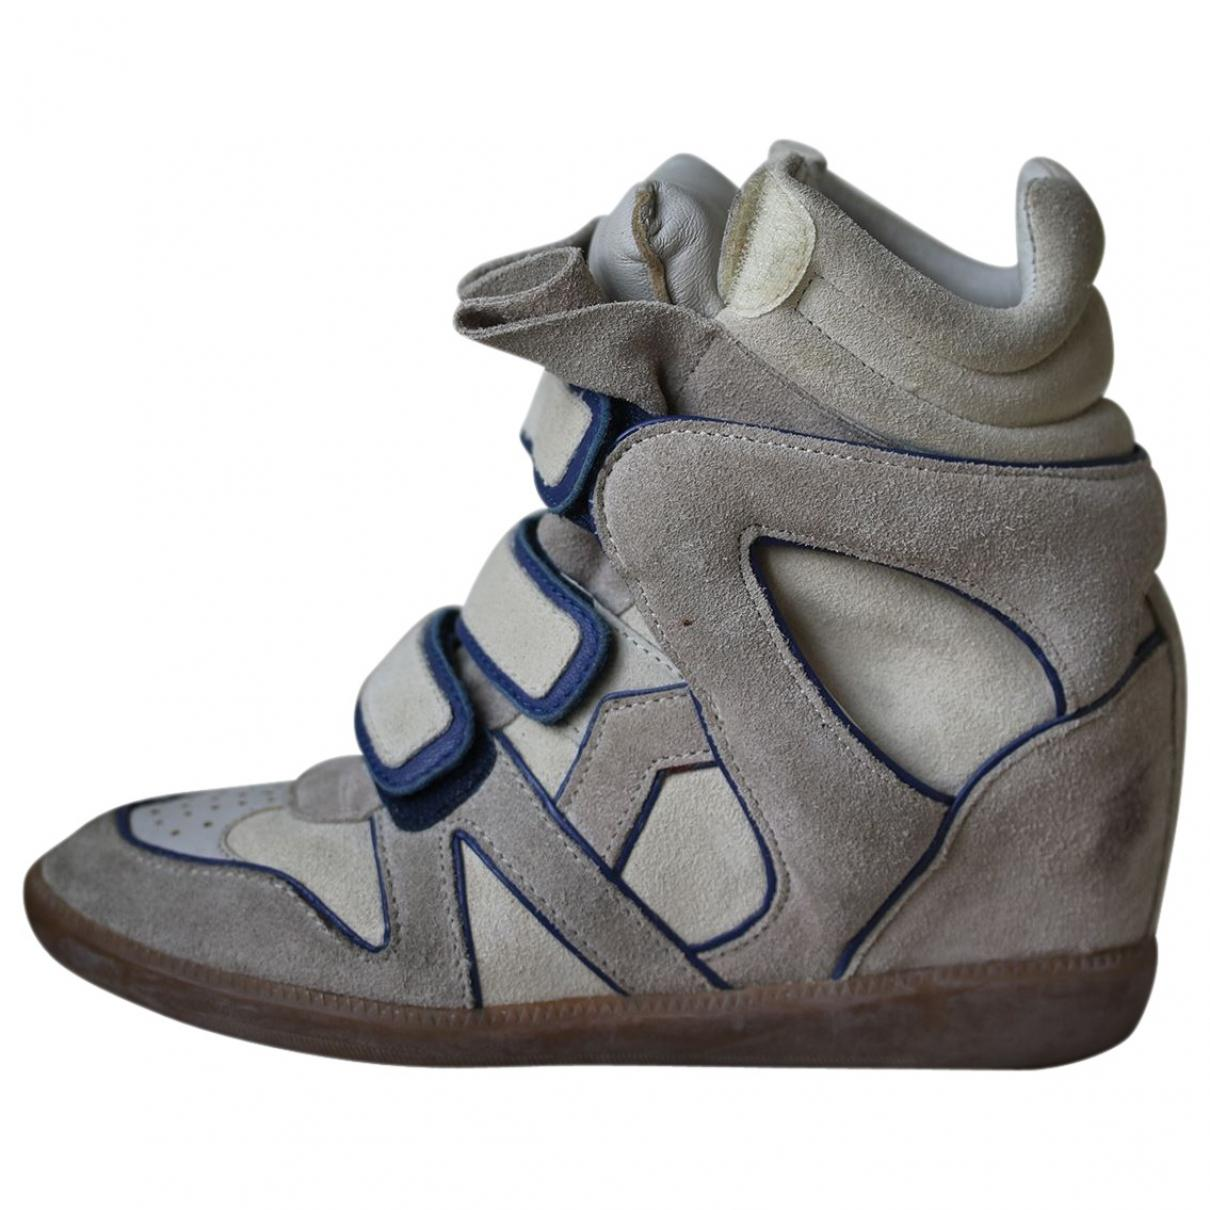 Cheap View With Paypal Online Pre-owned - Beckett trainers Isabel Marant Original Free Shipping Many Kinds Of QmWrhNGP3G